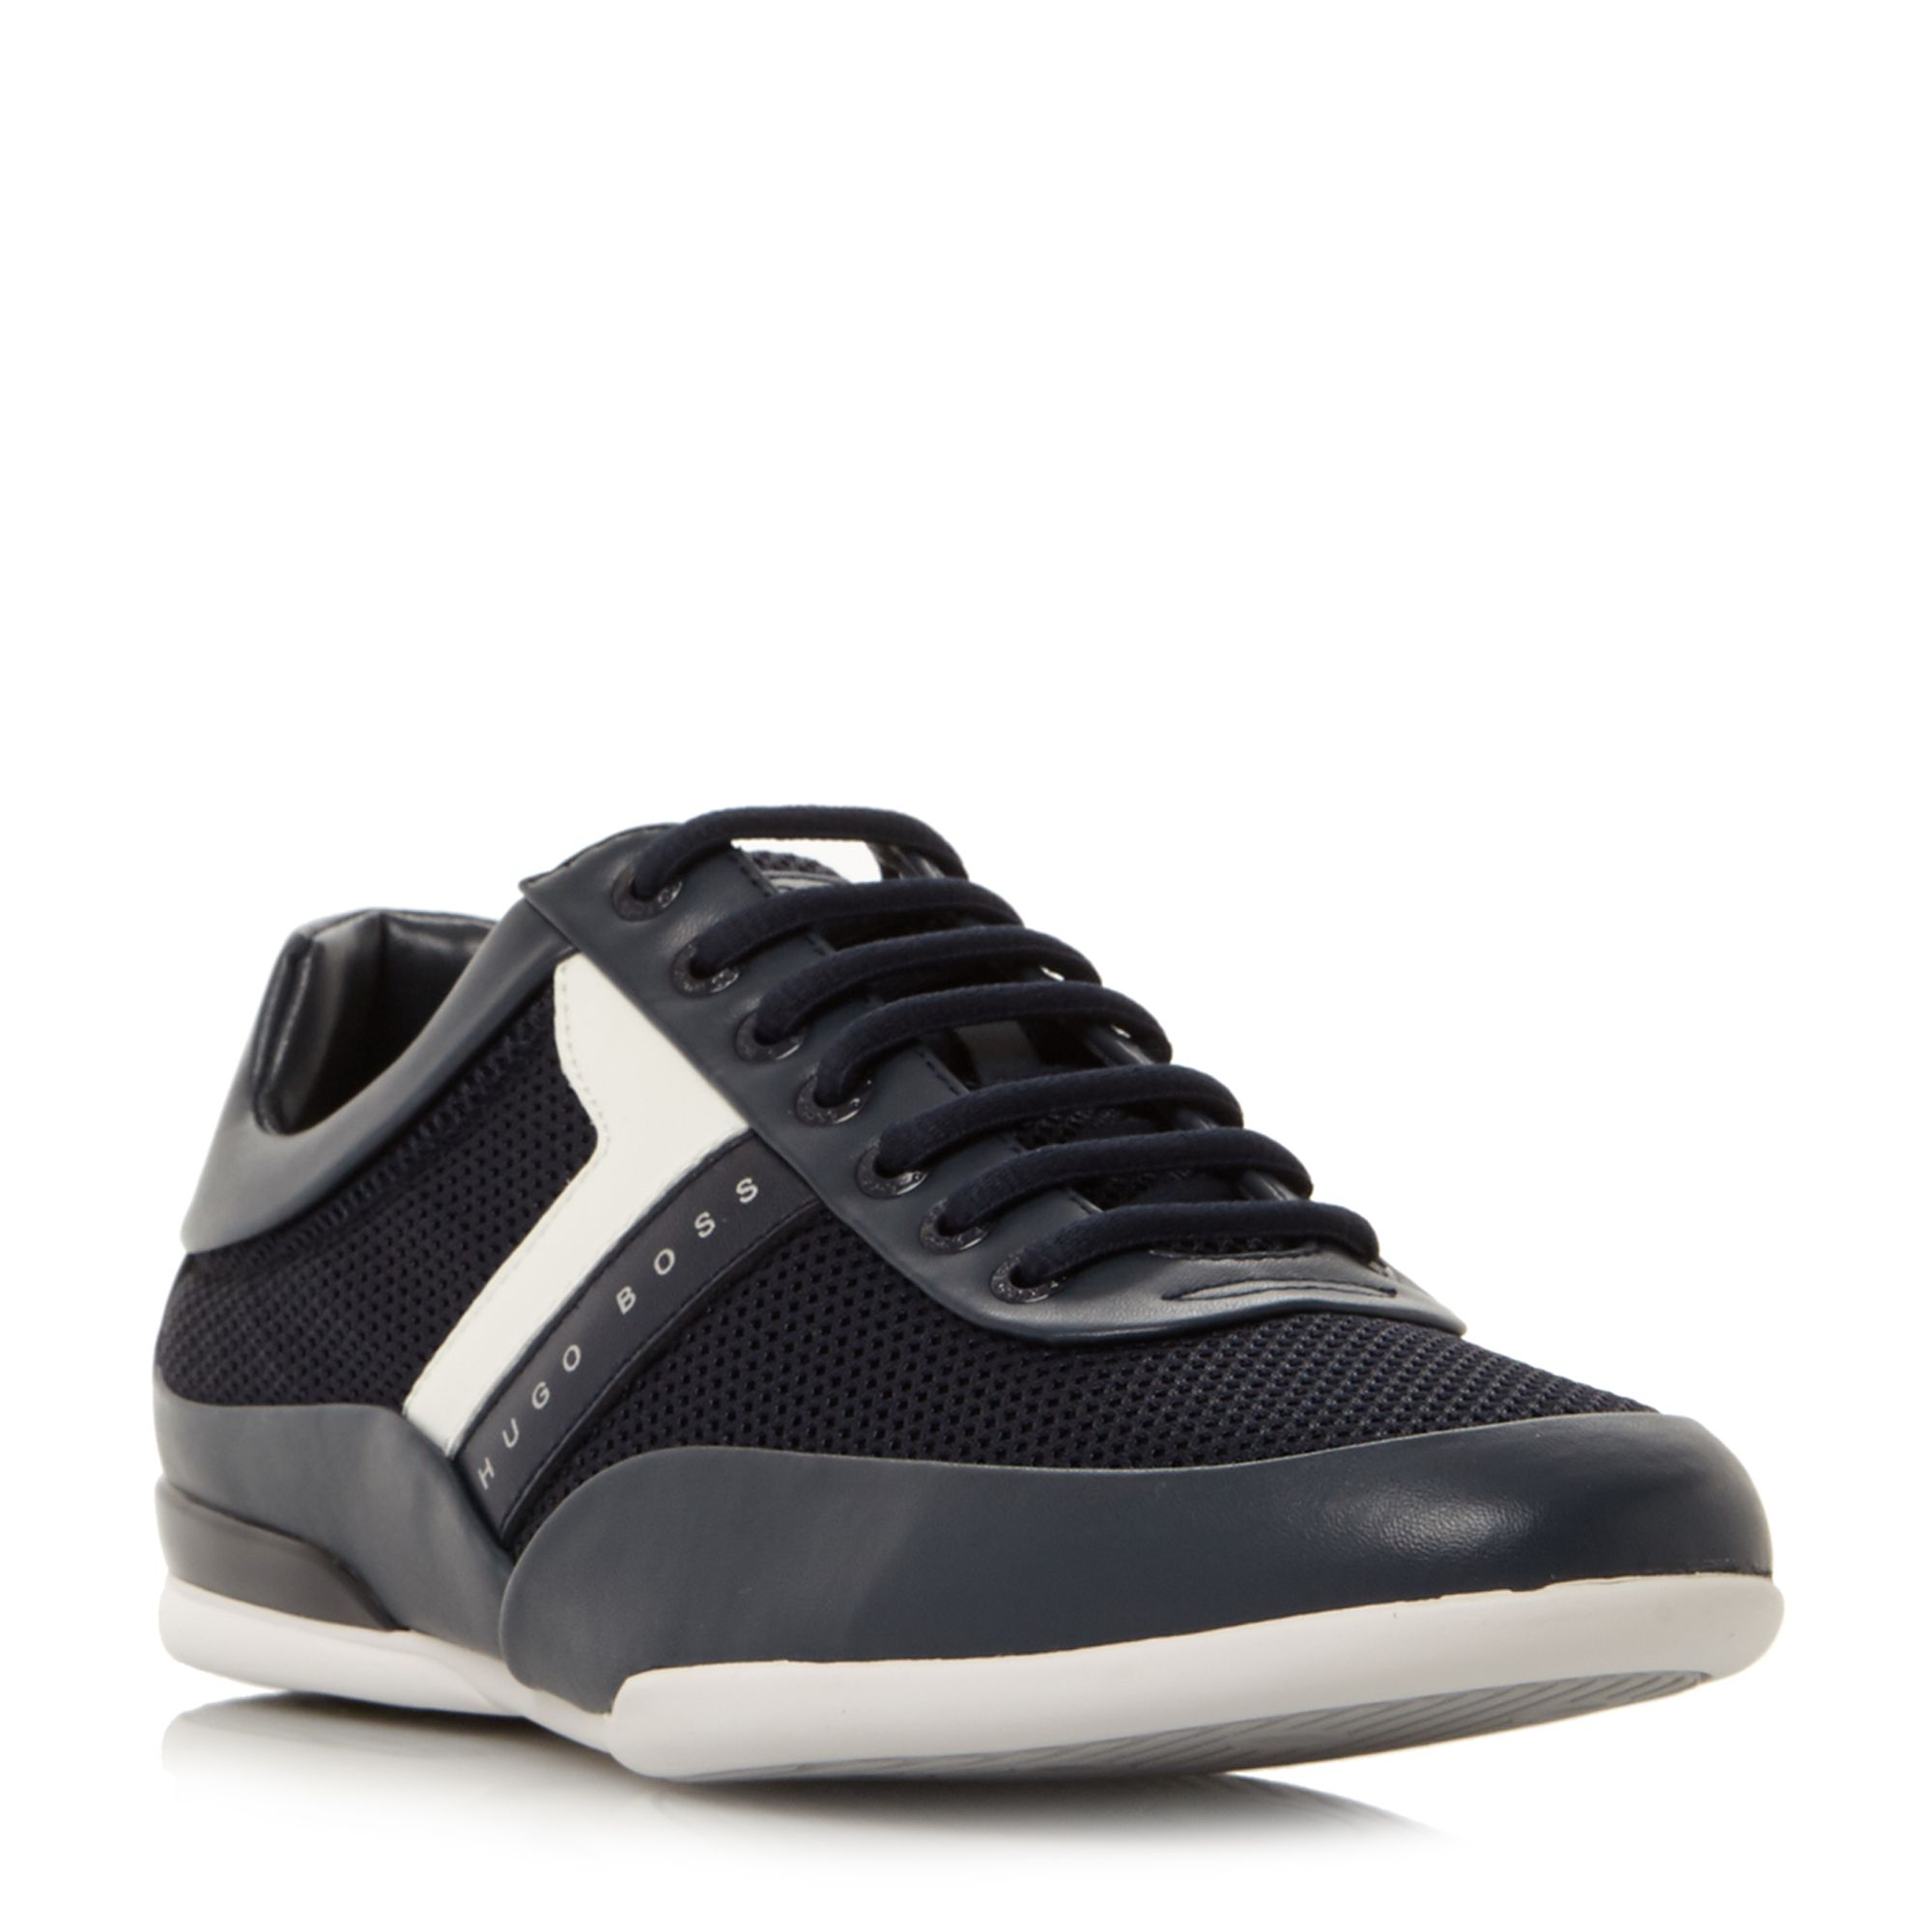 Hugo Boss Space low cambo printed trainers Navy